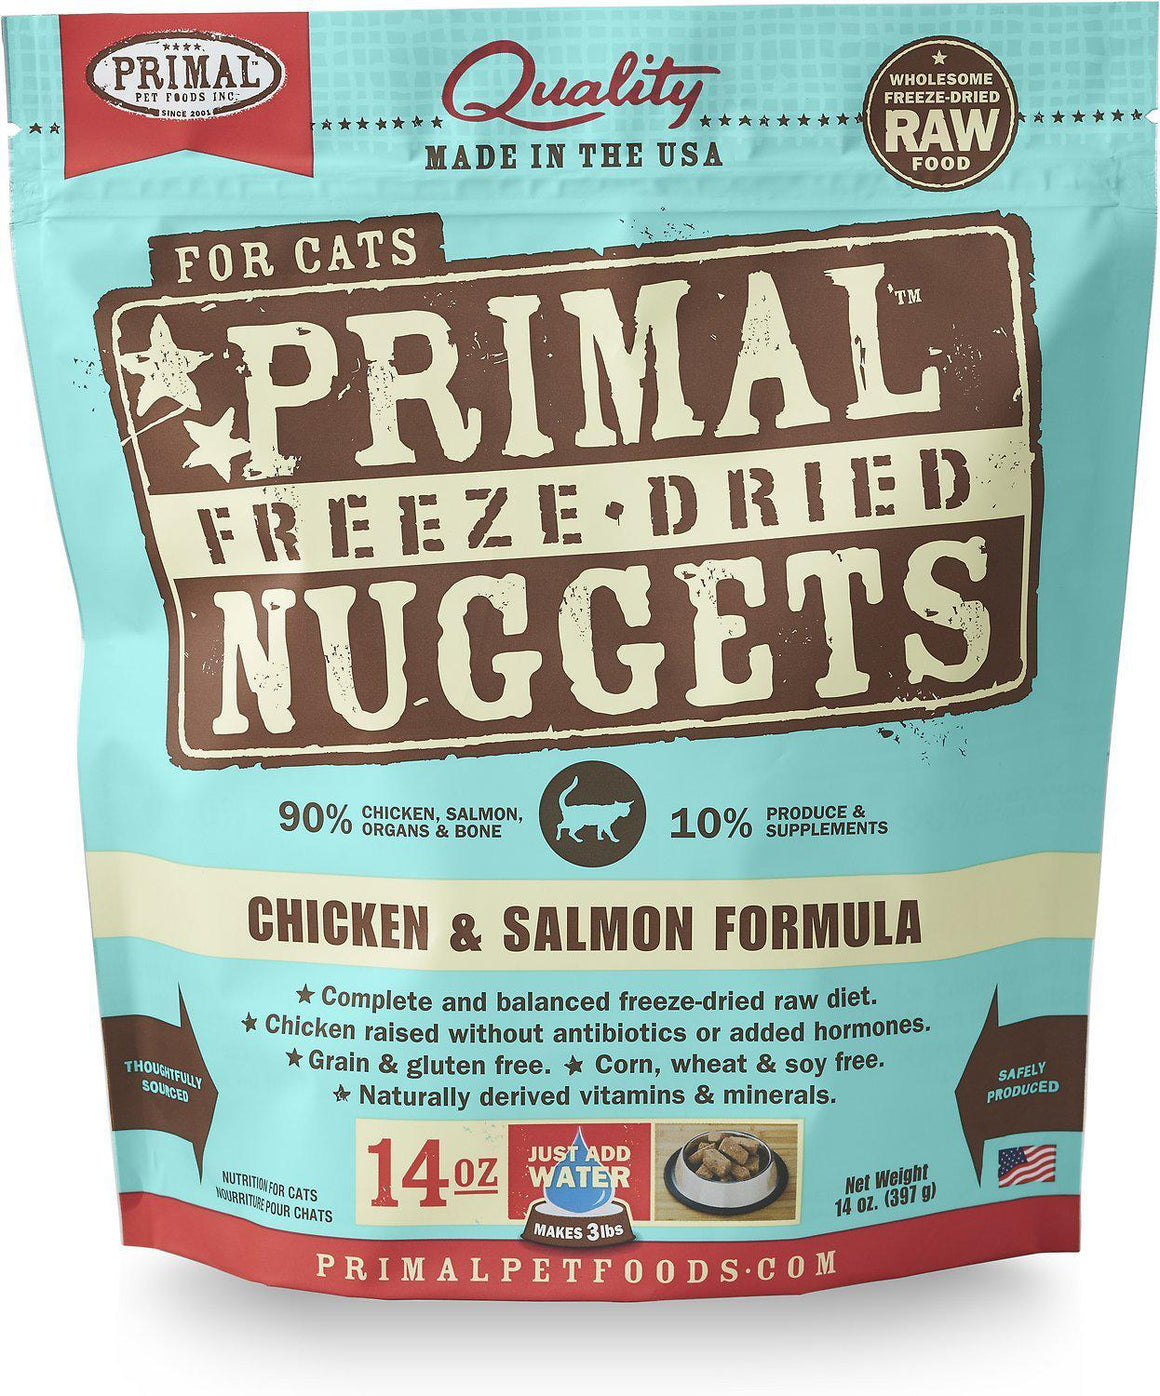 Primal Chicken & Salmon Formula Grain-Free Freeze-Dried Raw Nuggets Cat Food-Le Pup Pet Supplies and Grooming